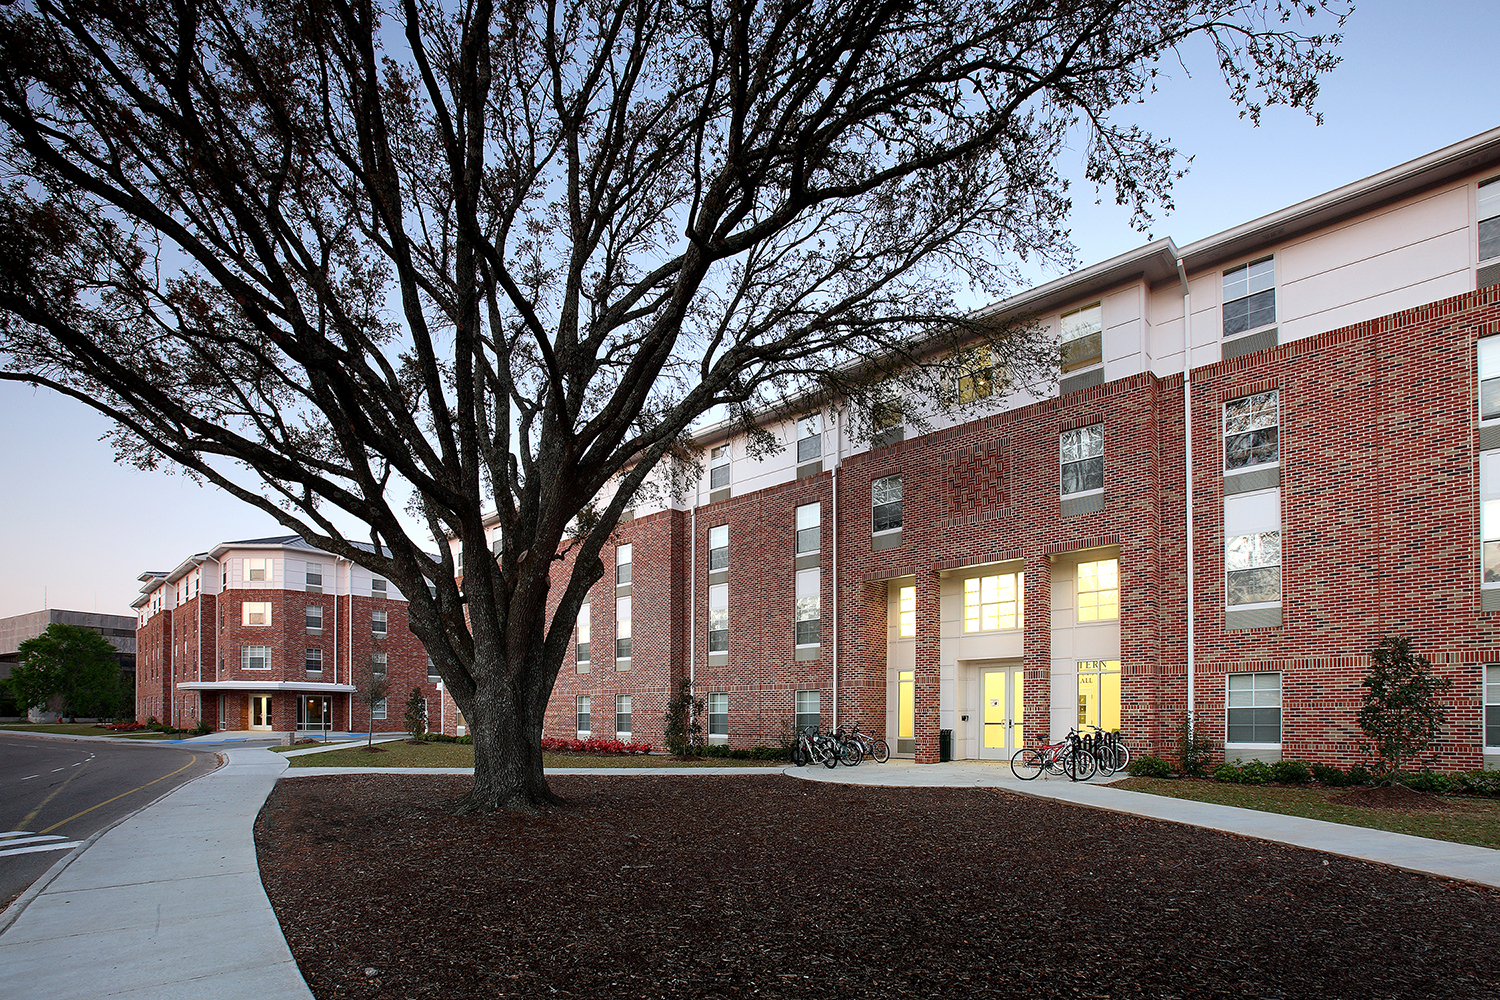 SE Louisiana University - Student Housing & Master Plan